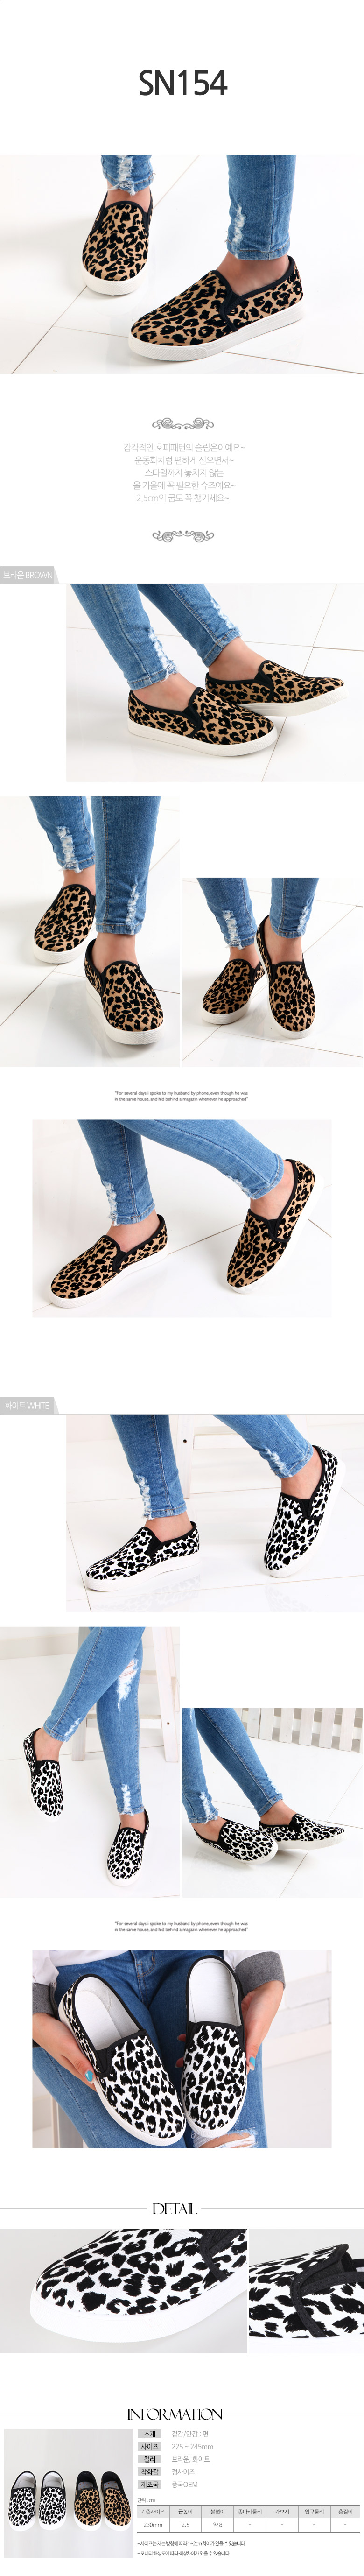 [Shoesn] Leopard Slip-on Shoes[sn154] White